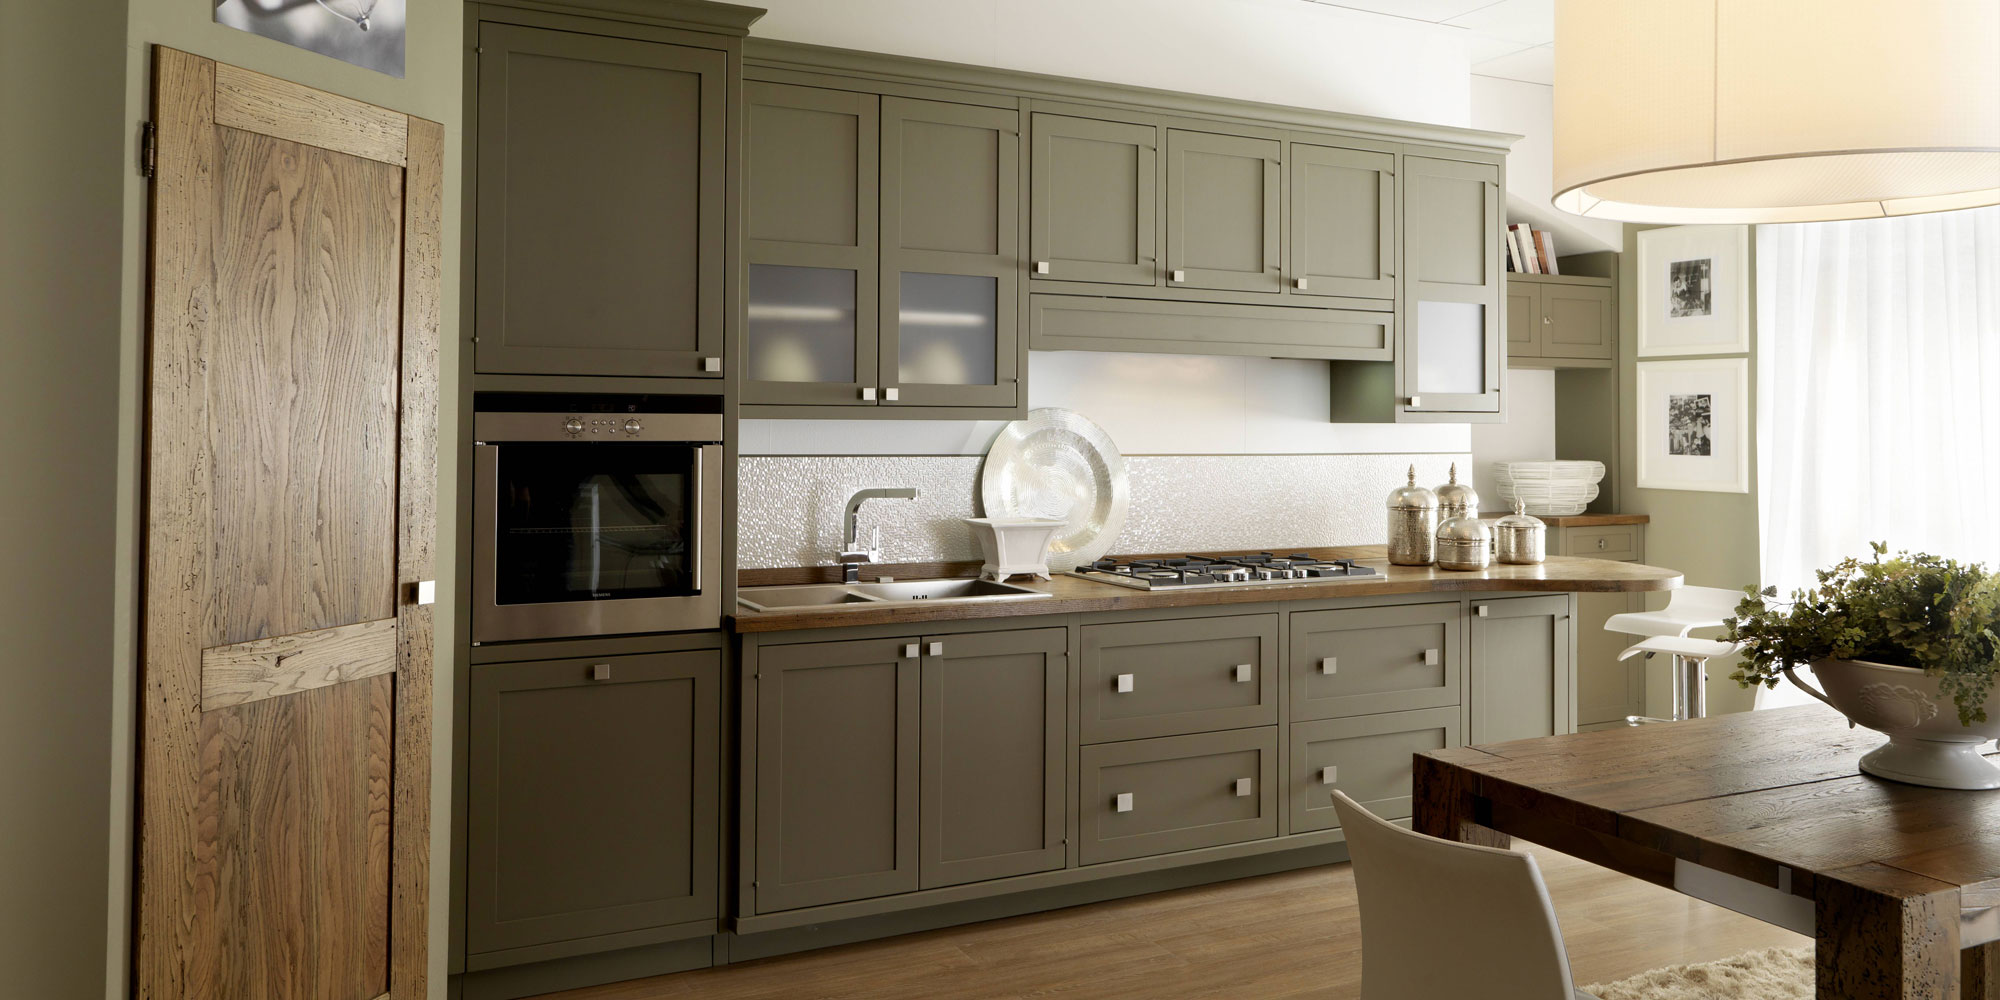 Cucine Bamax. Eurocucina Shows New Trends For Modern And Luxury ...